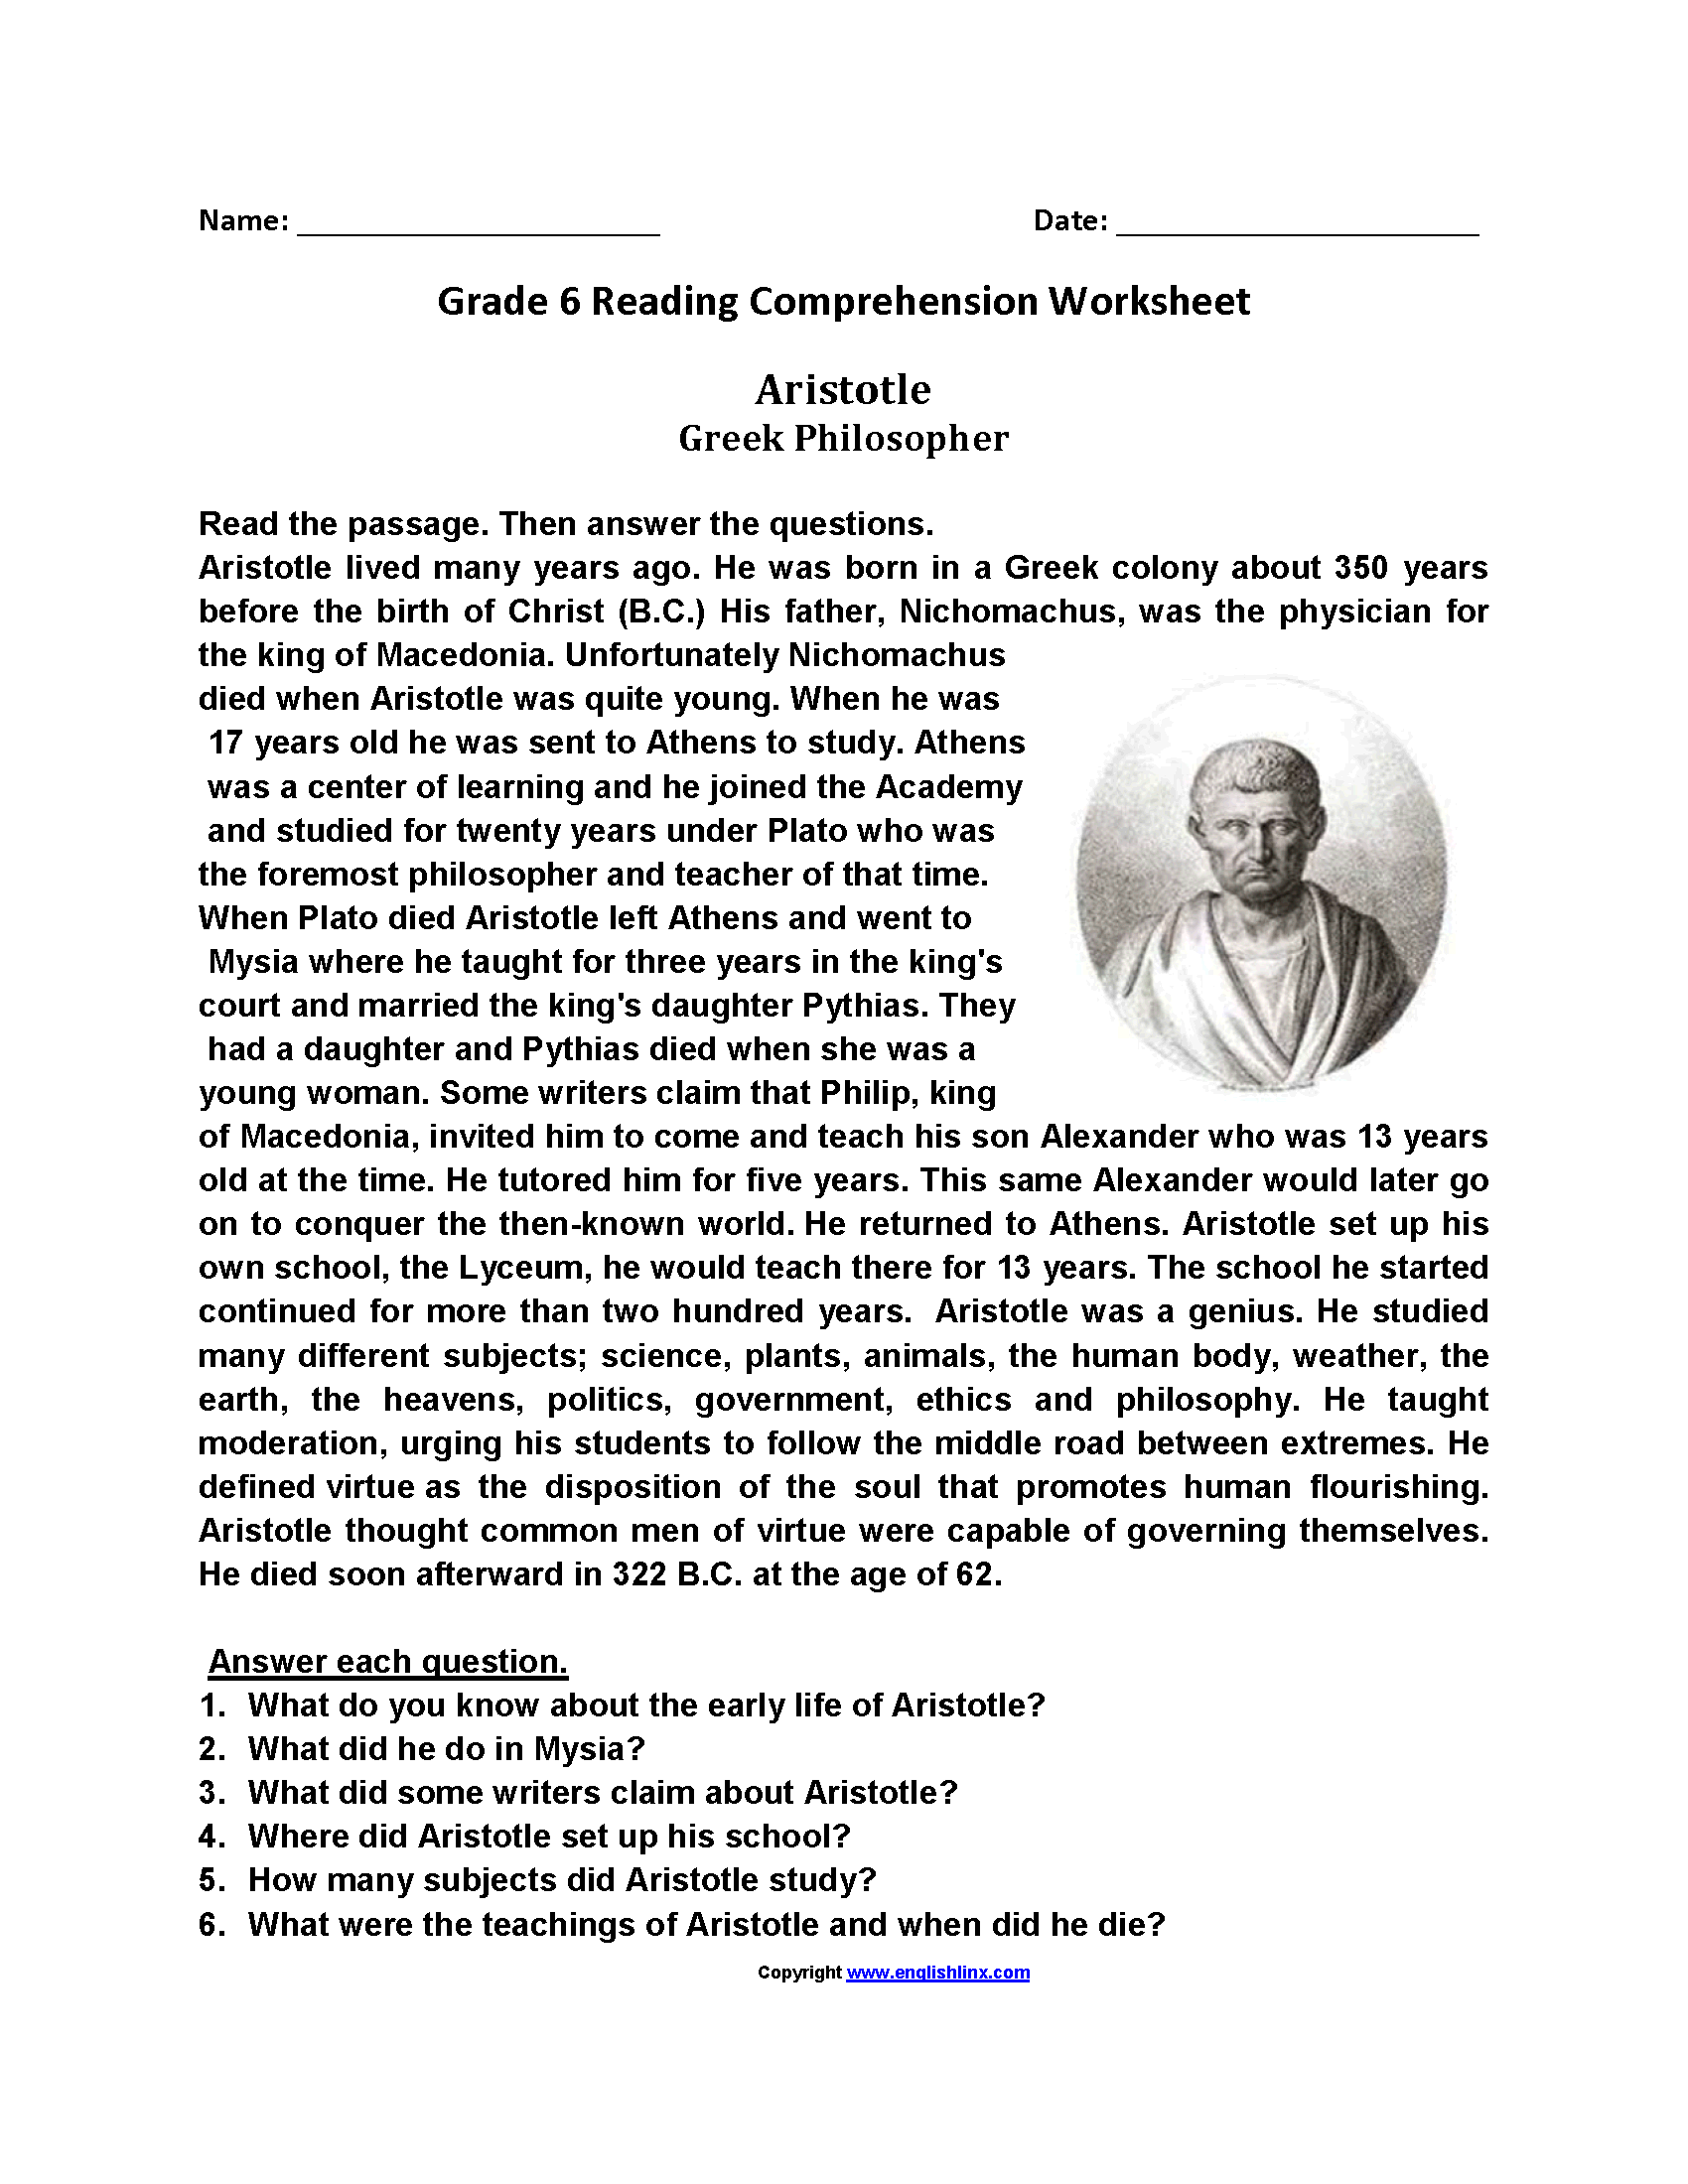 furthermore prehension Worksheets with Questions and Reading Worksheets Sixth besides 5th grade Reading Worksheets  Reading  prehension  dialects moreover Math Decimal Worksheets Grade 6 Decimals Multiplication 5 also Reading  prehension Worksheets 4th Grade   Mychaume additionally Click Here For The Problem Solution File Essay Box Outline Copy And additionally Printable worksheets reading  prehension 4th grade   Download them as well Decimals Worksheet 6th Grade Awesome Free Printable Math Worksheets further Reading Worksheets   Sixth Grade Reading Worksheets likewise Context Clues Worksheets Worksheets Level One Main Idea And furthermore Reading Best  prehension Ideas On Grade Writing Worksheets Sixth additionally Using Context Clues Worksheets 6th Grade Awesome Context Clues moreover Reading Worksheets For 6th Grade Pdf – cycconteudo co besides Resources   Fifth Grade   Reading   Reading  prehension further  further . on reading worksheets for 6th grade